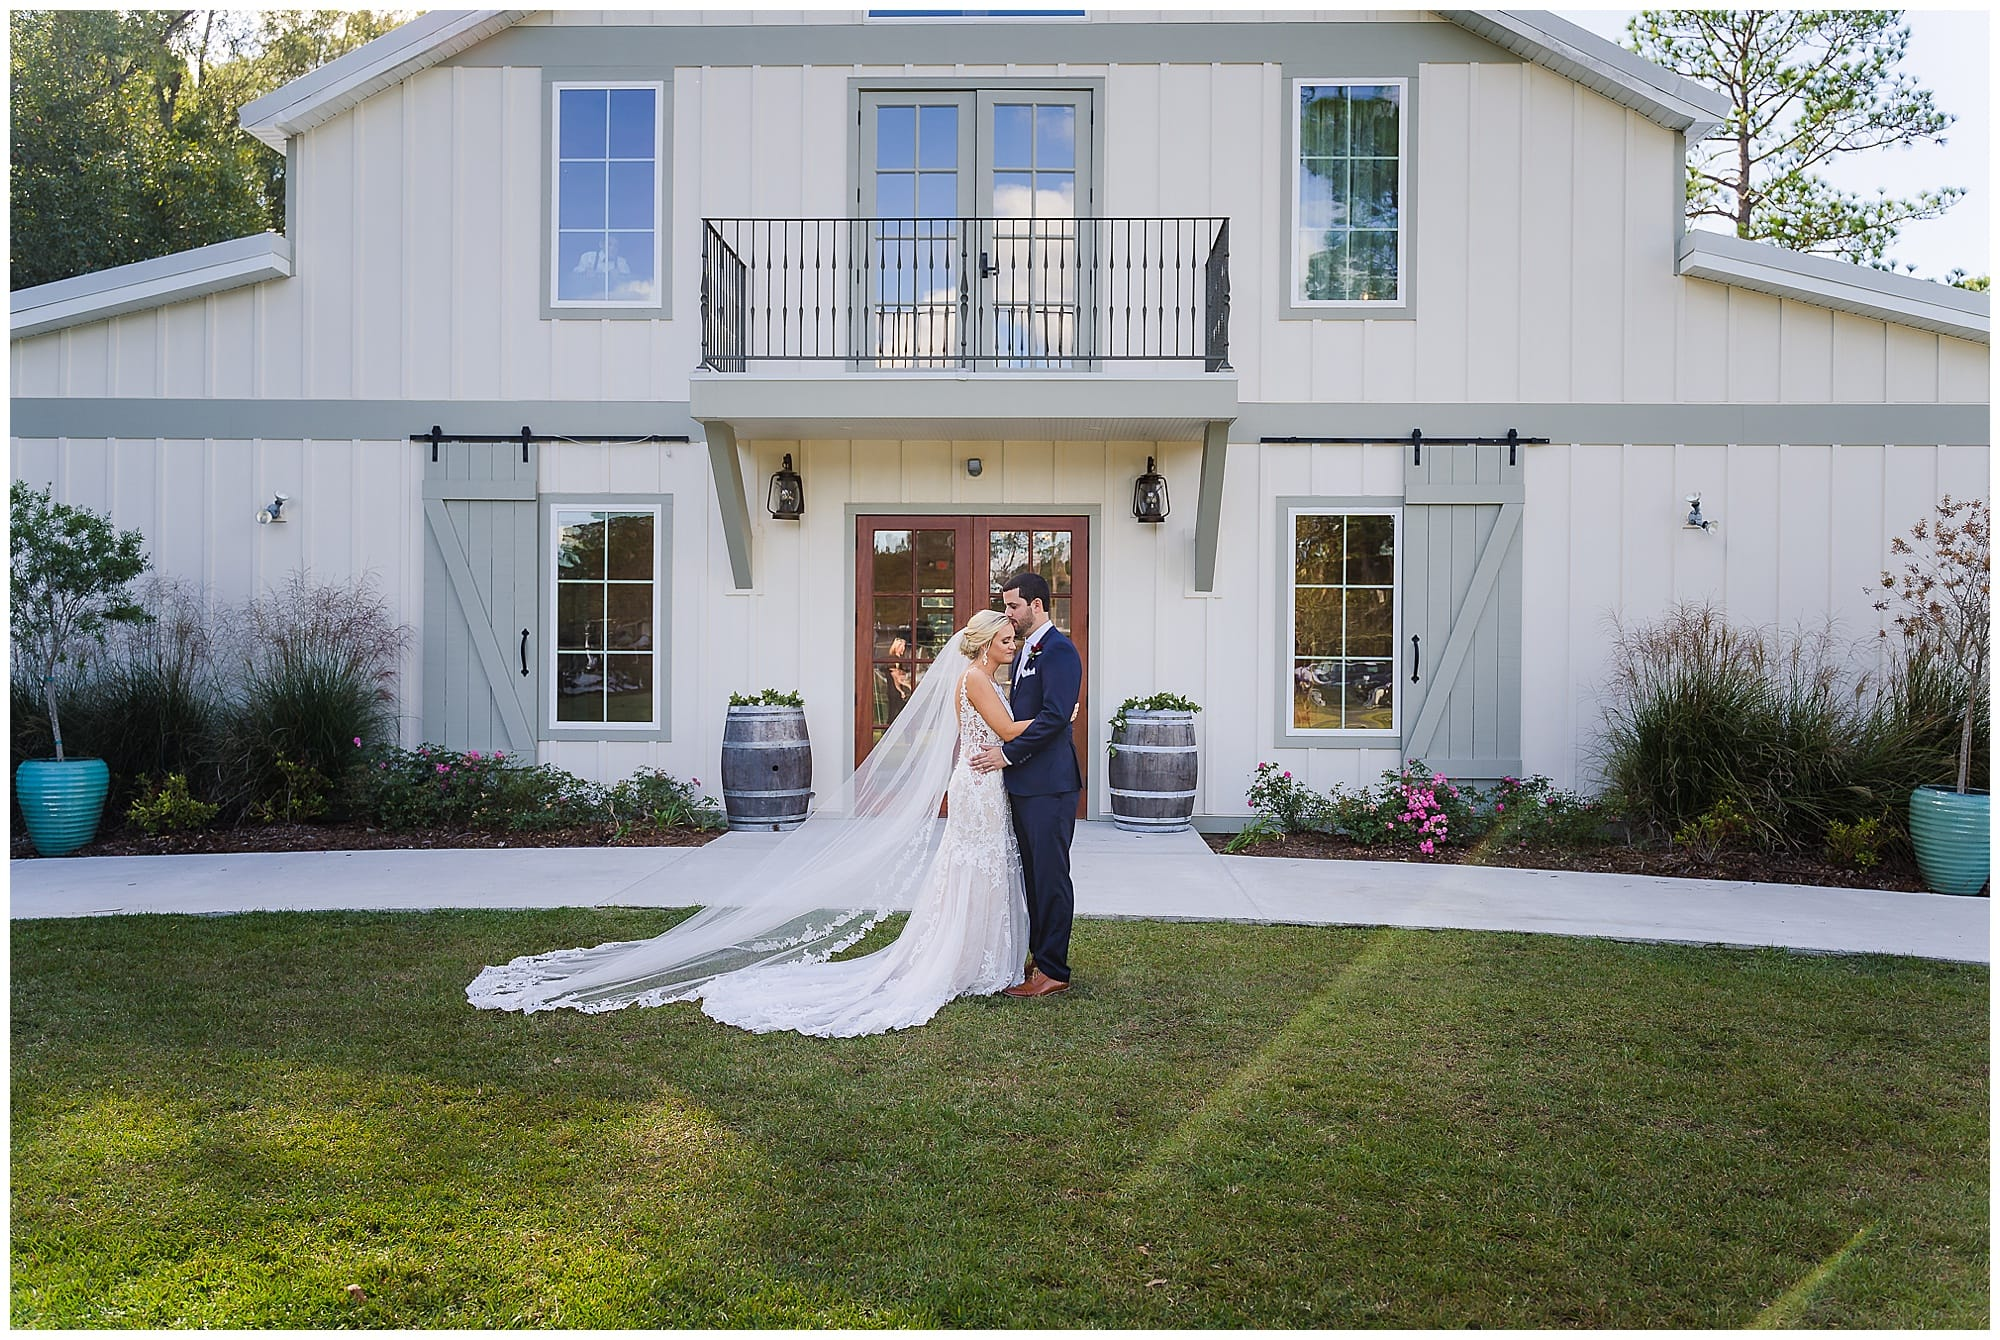 The Sadie Jane Wedding Venue bridal couple posing